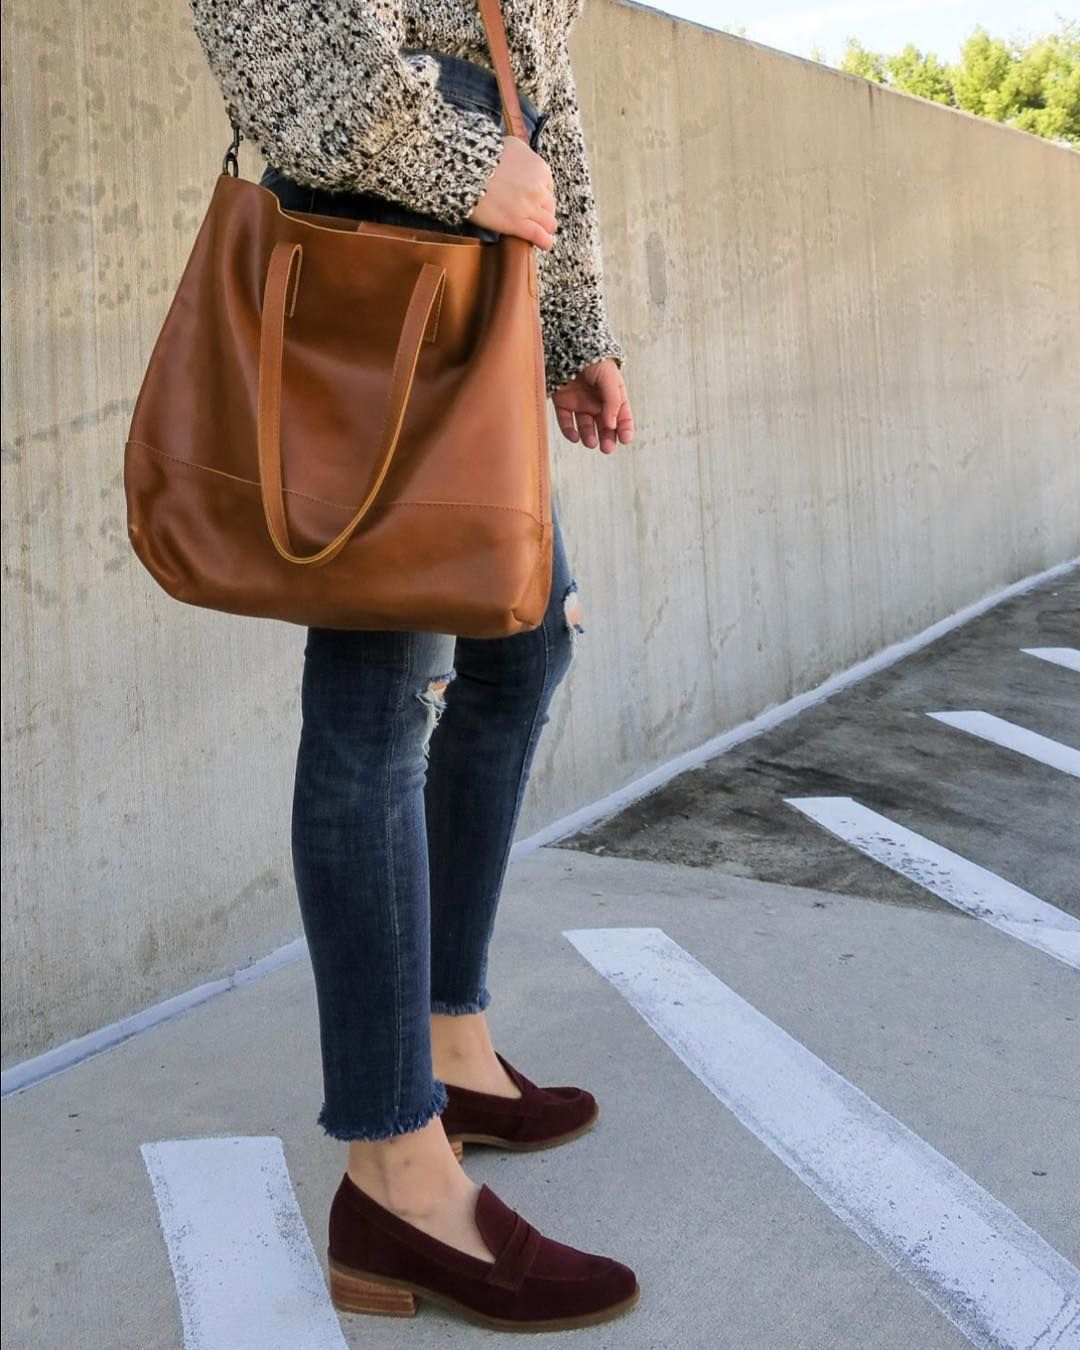 991f05a3b227 4 DAYS, 4 ABLE FAVES: The Abera Crossbody Tote is one of our best ...